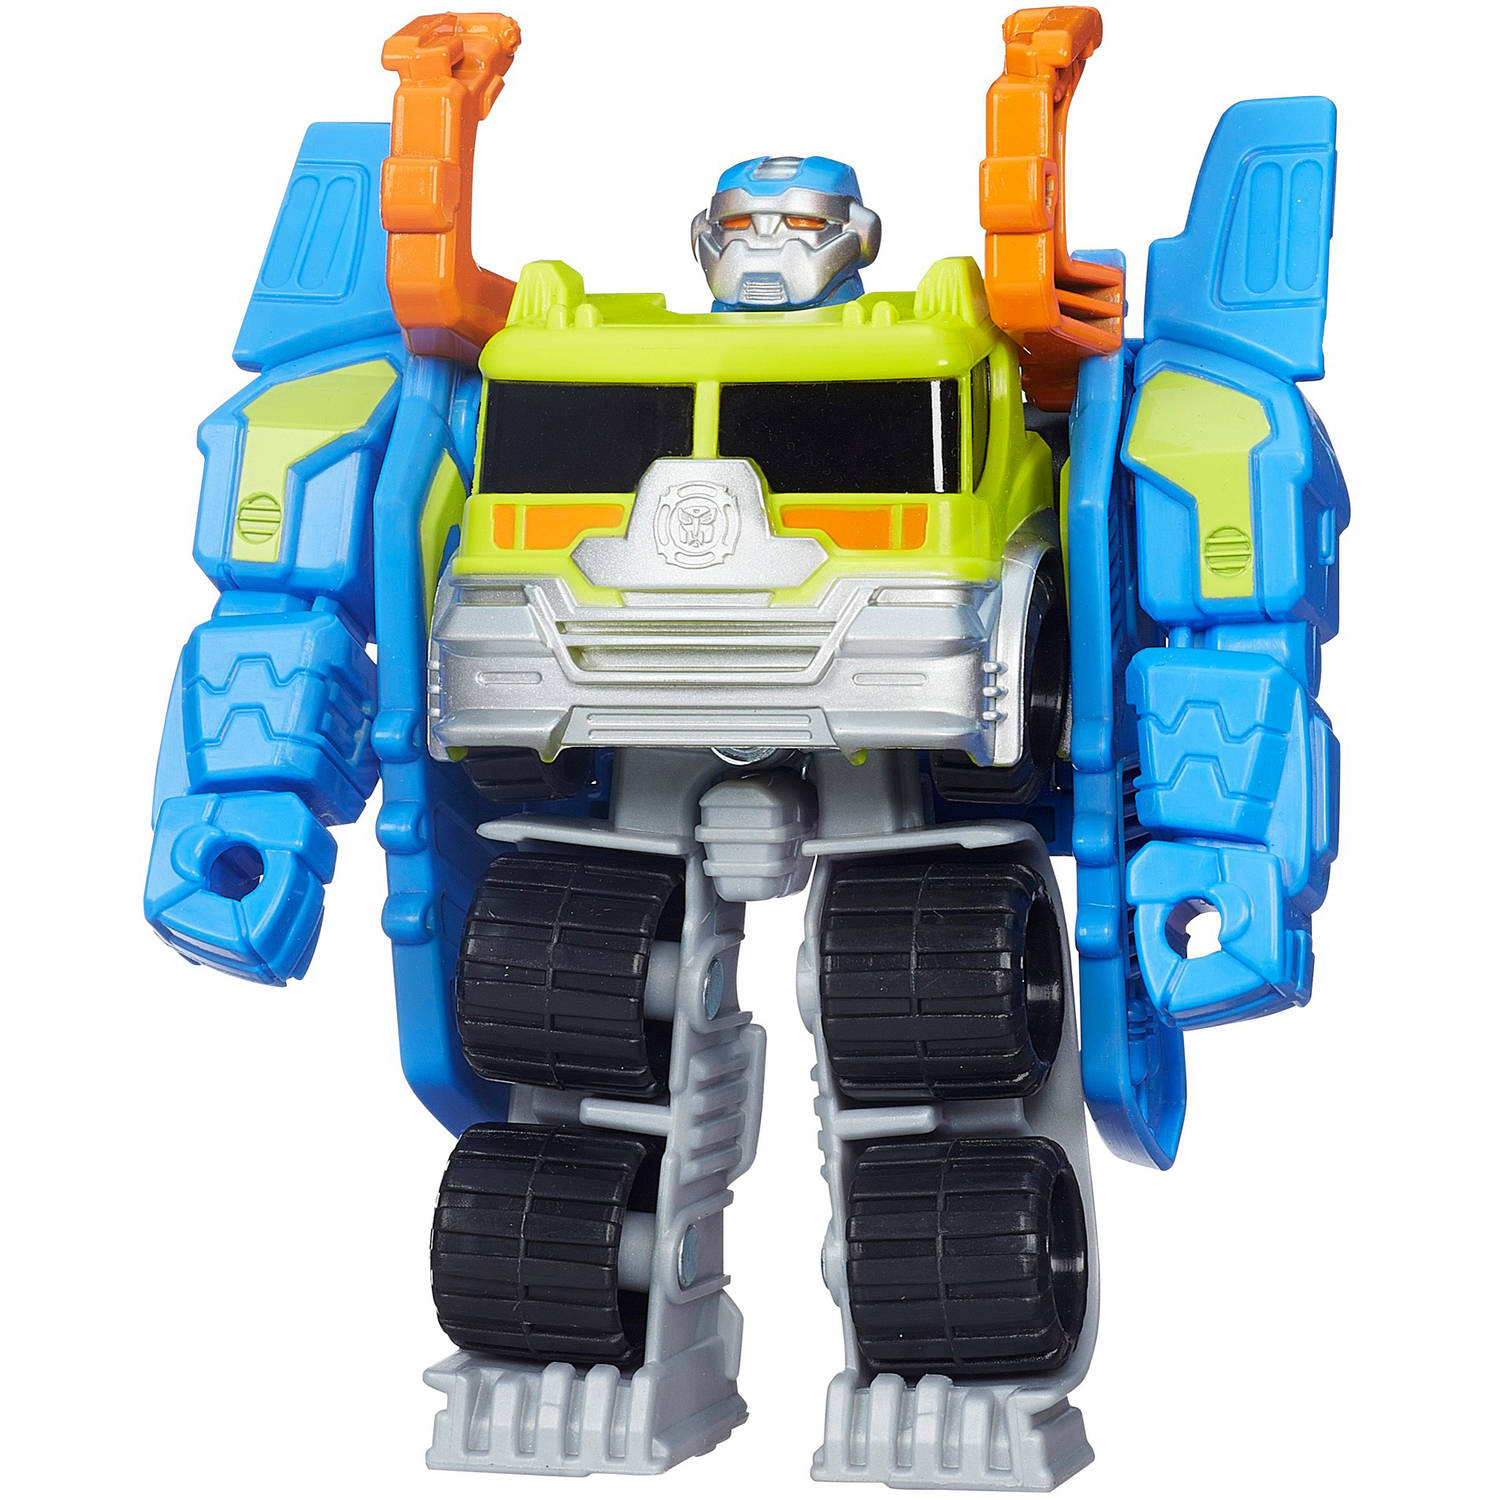 Playskool Heroes Transformers Rescue Bots Salvage the Construction-Bot Figure by Hasbro